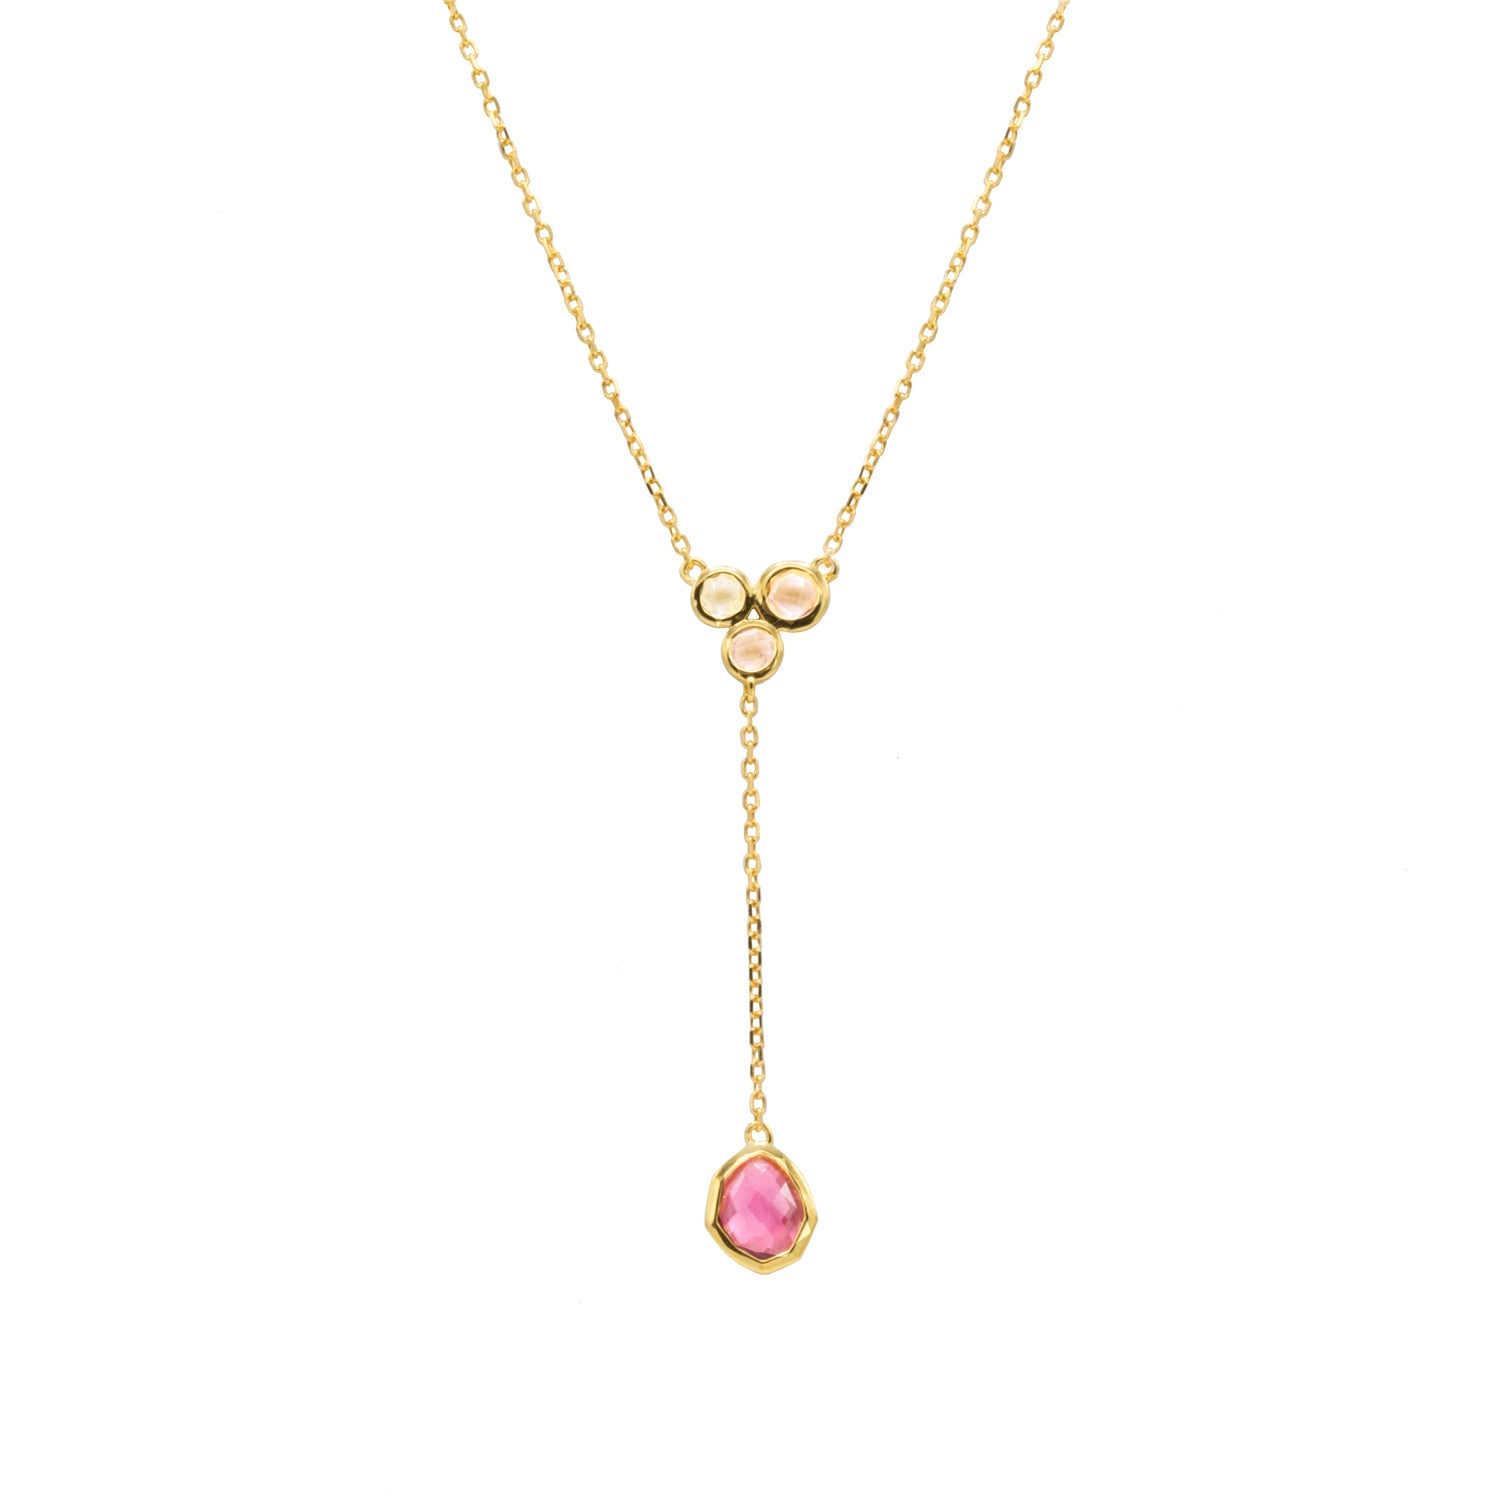 pinks greggruth baby ruth gregg diamond pink necklace